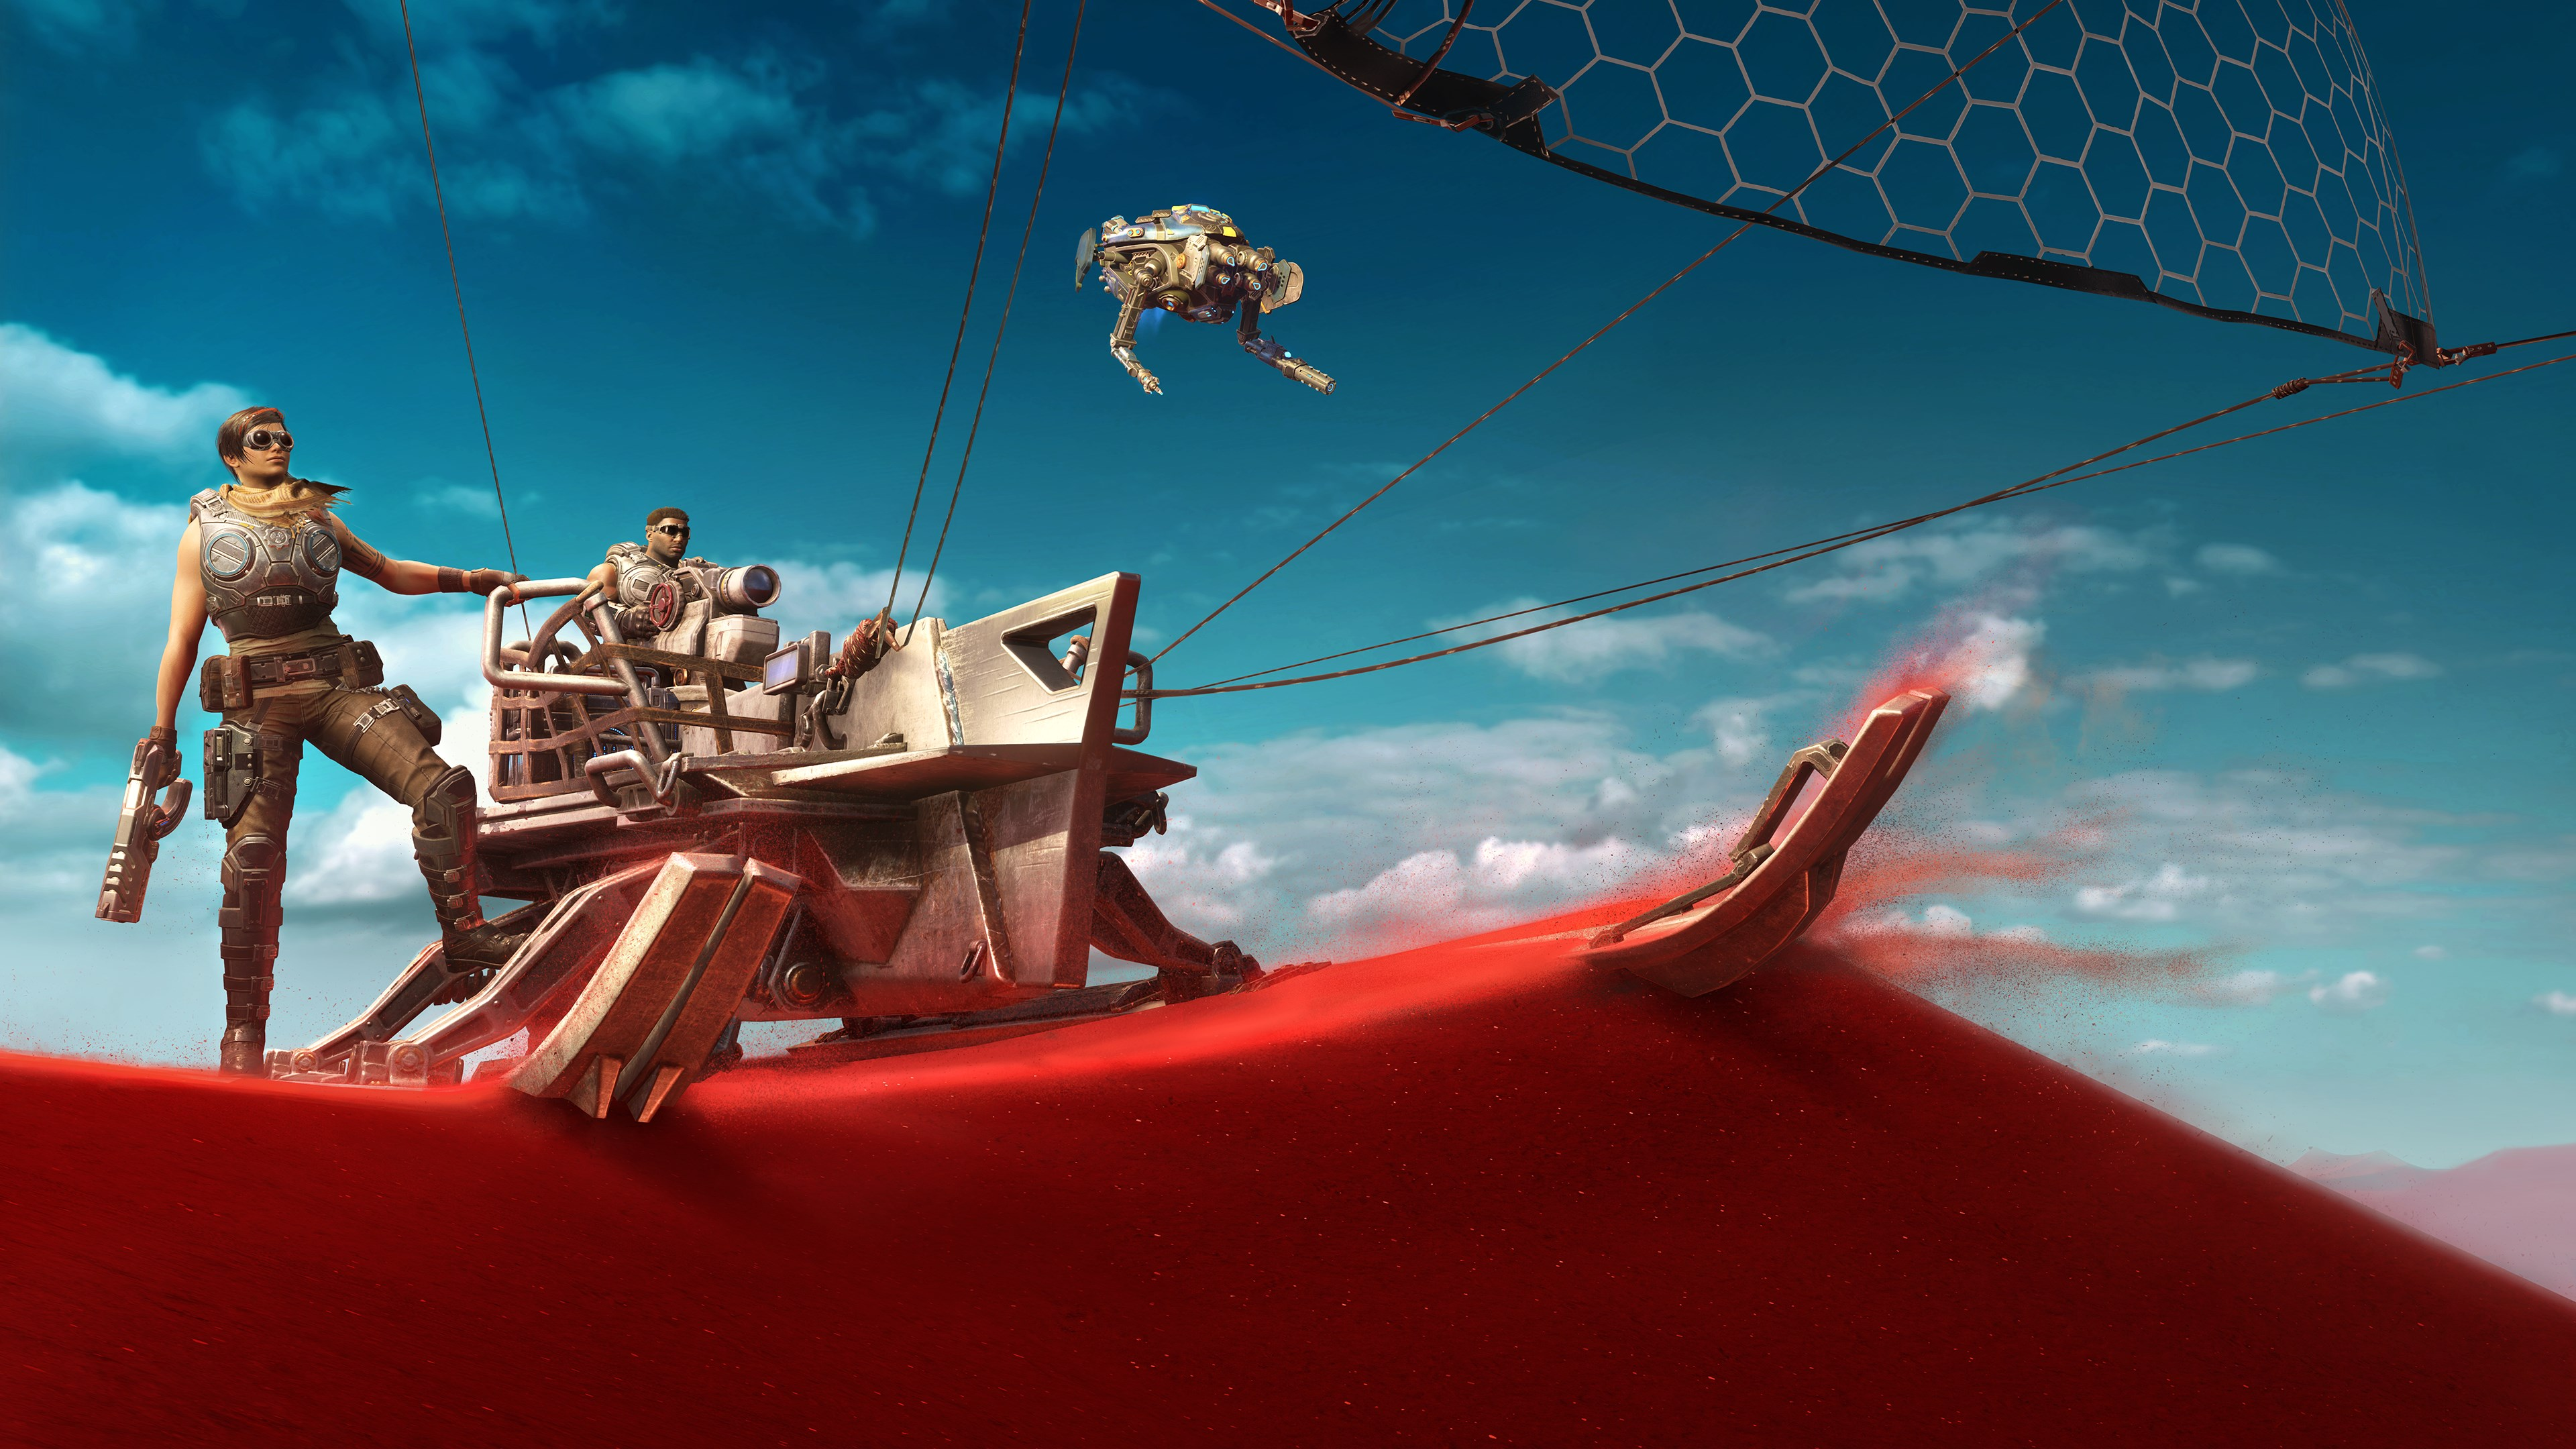 The Skiff stands still atop a red sand dune, the sail aloft in the wind. Desert Armored Kait stands looking out over the horizon. Her left hand holds on to the side of the Skiff and in her right she holds a pistol. Desert Armored Del sits in the Skiff's driver seat. Jack hovers in the foreground.